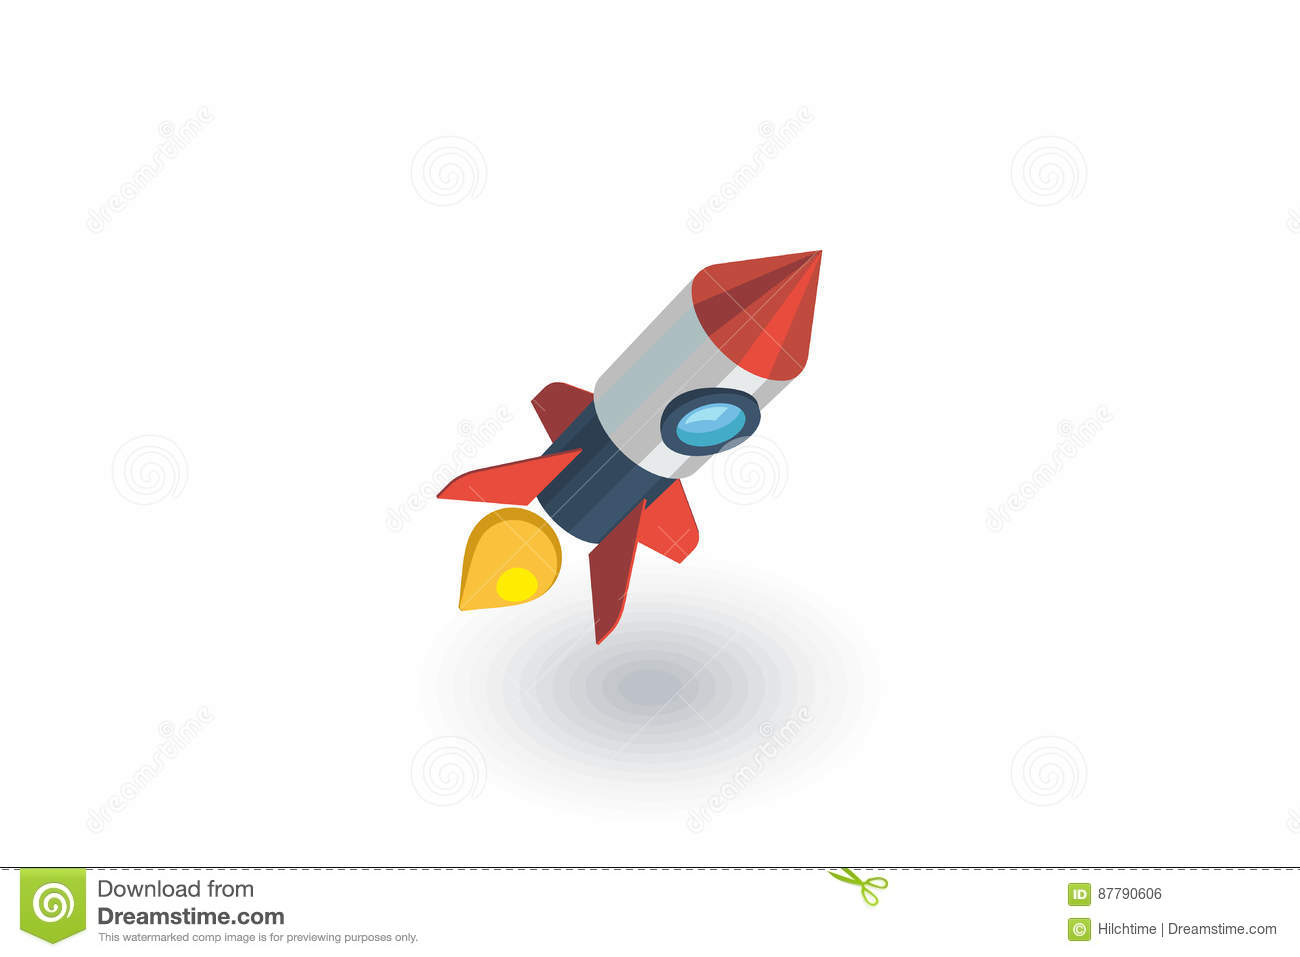 Startup, rocket launch isometric flat icon. 3d vector